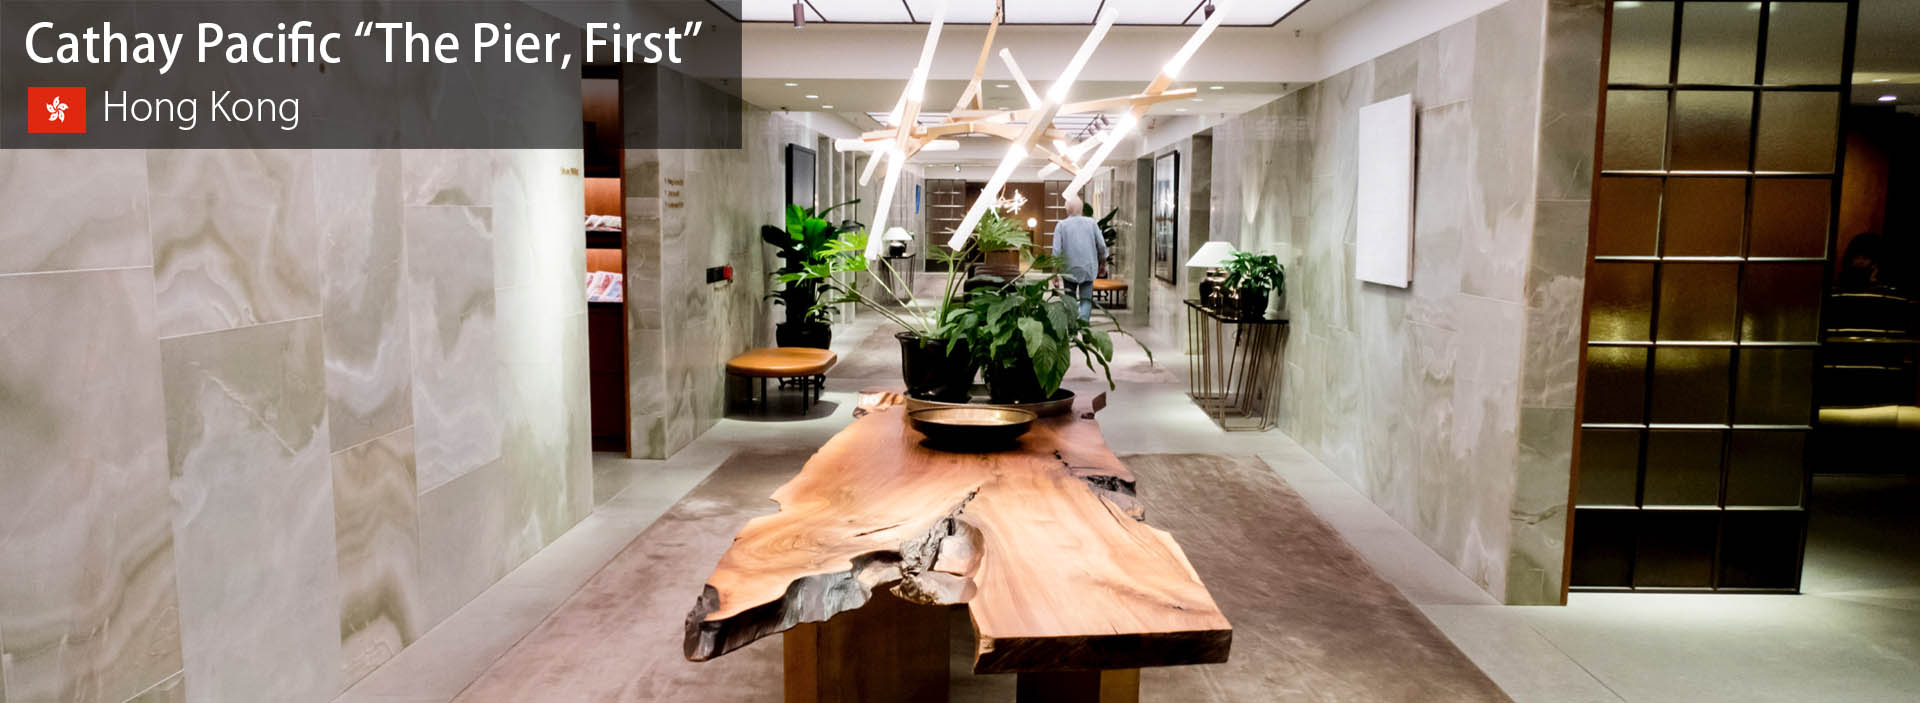 """Lounge Review: Cathay Pacific """"The Pier, First"""" at Hong Kong International"""